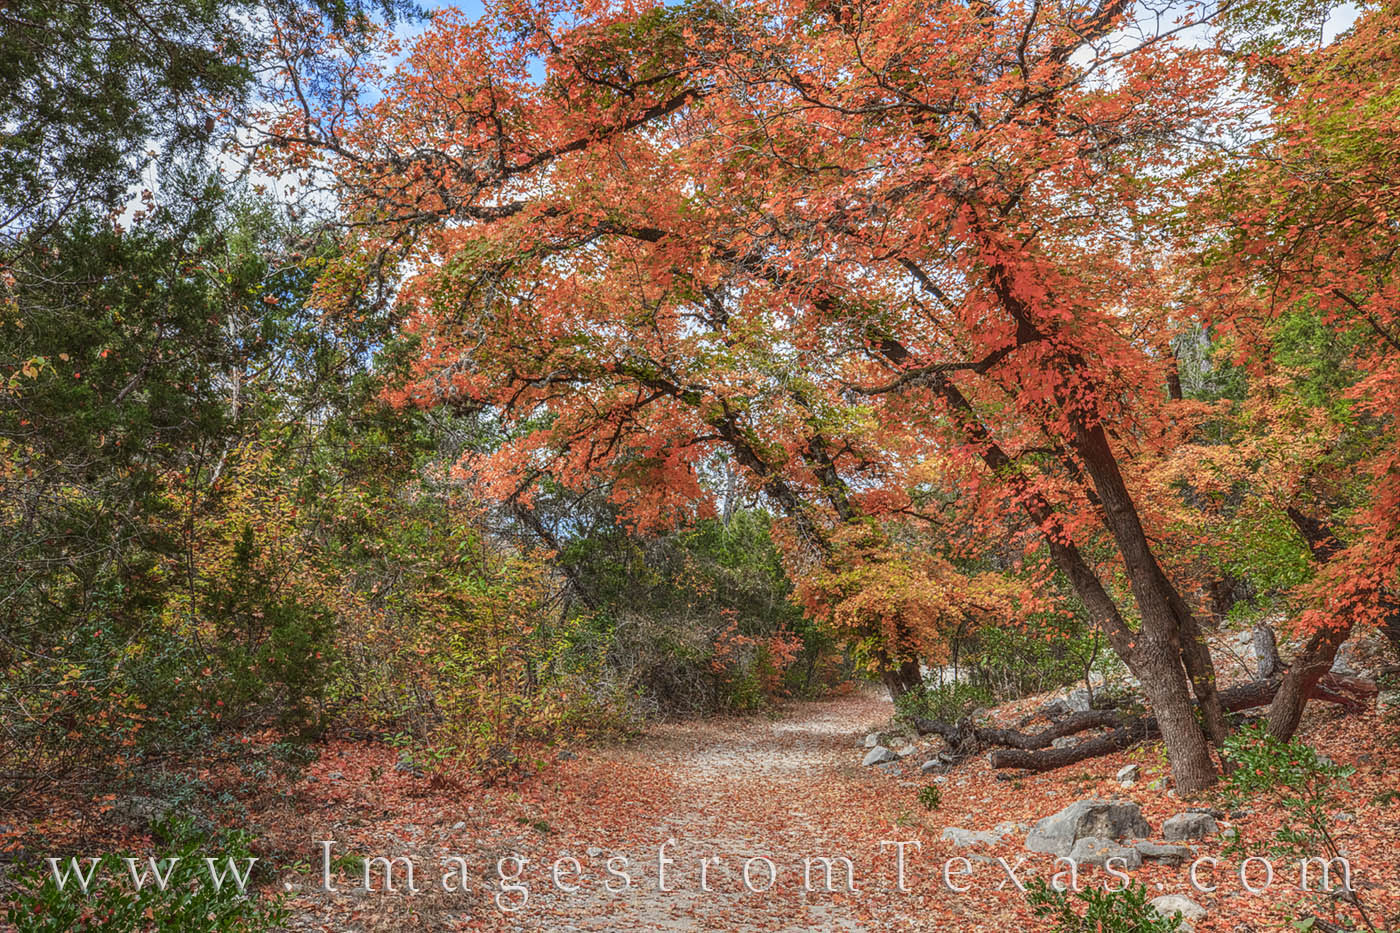 lost maples, hiking, bigtooth maple, red, orange, november, fall, autumn, cool, state parks, photo